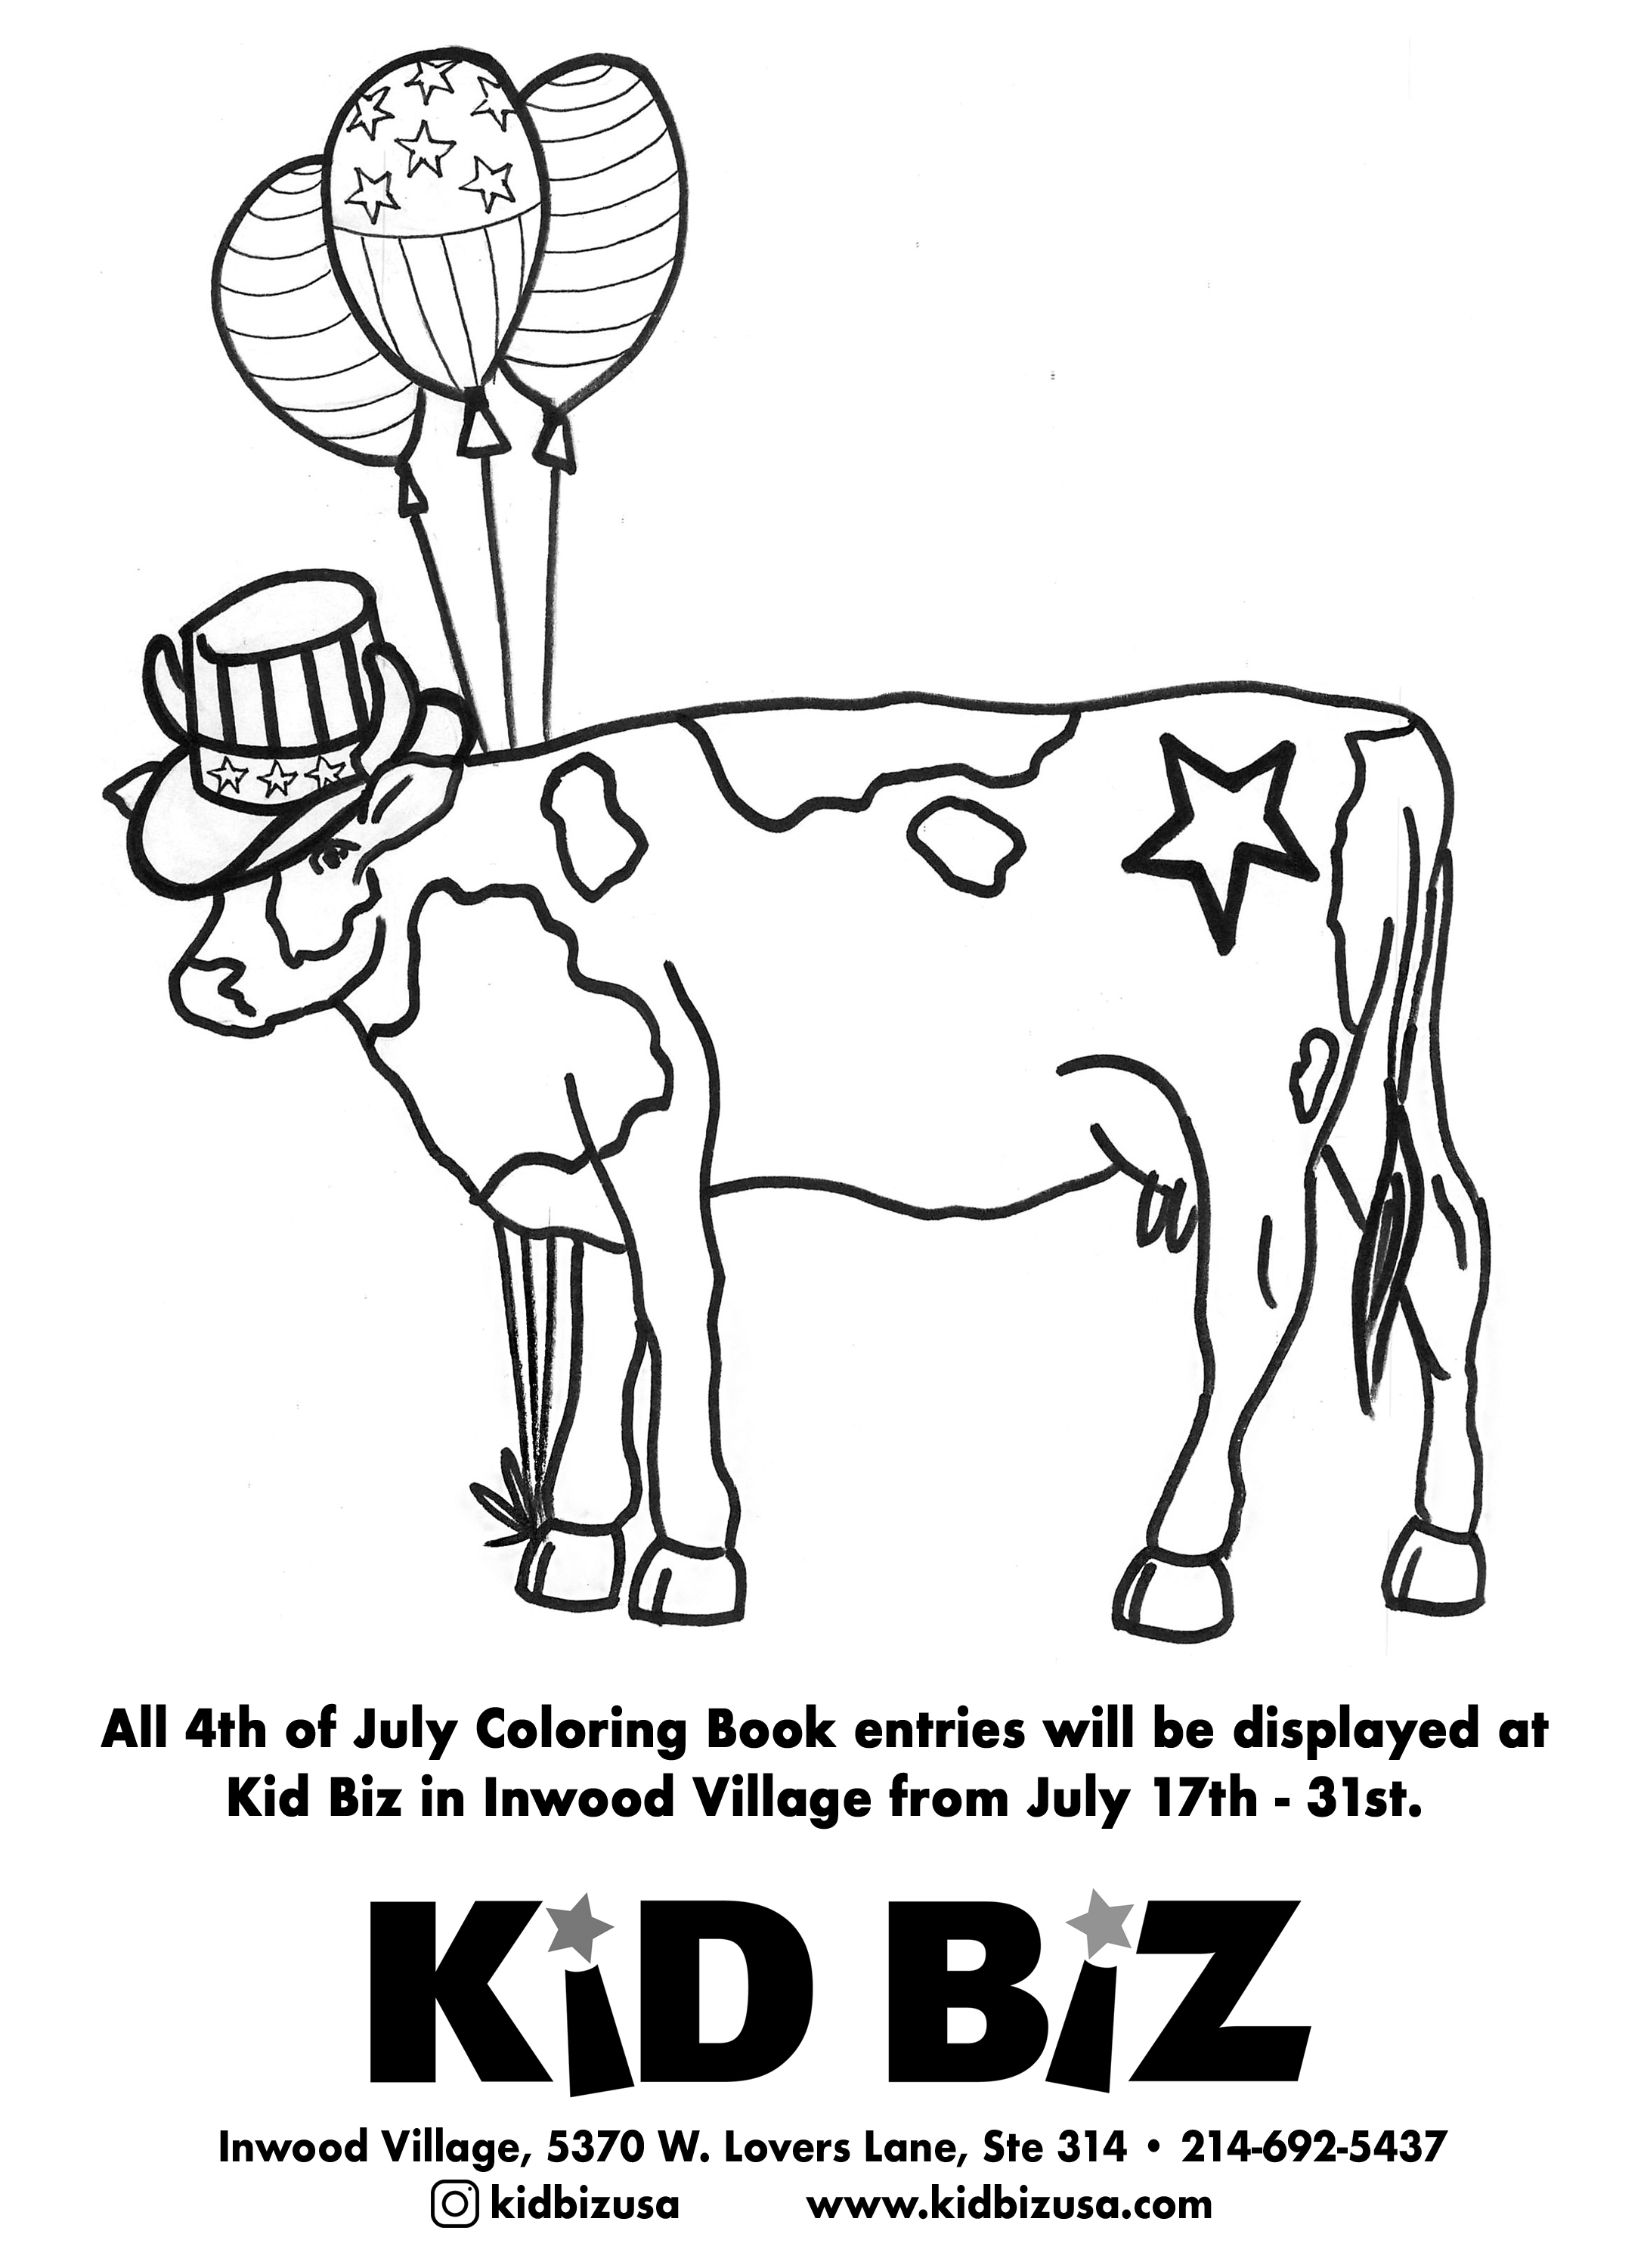 4th of July Coloring Book Contest 2019 Park Cities People